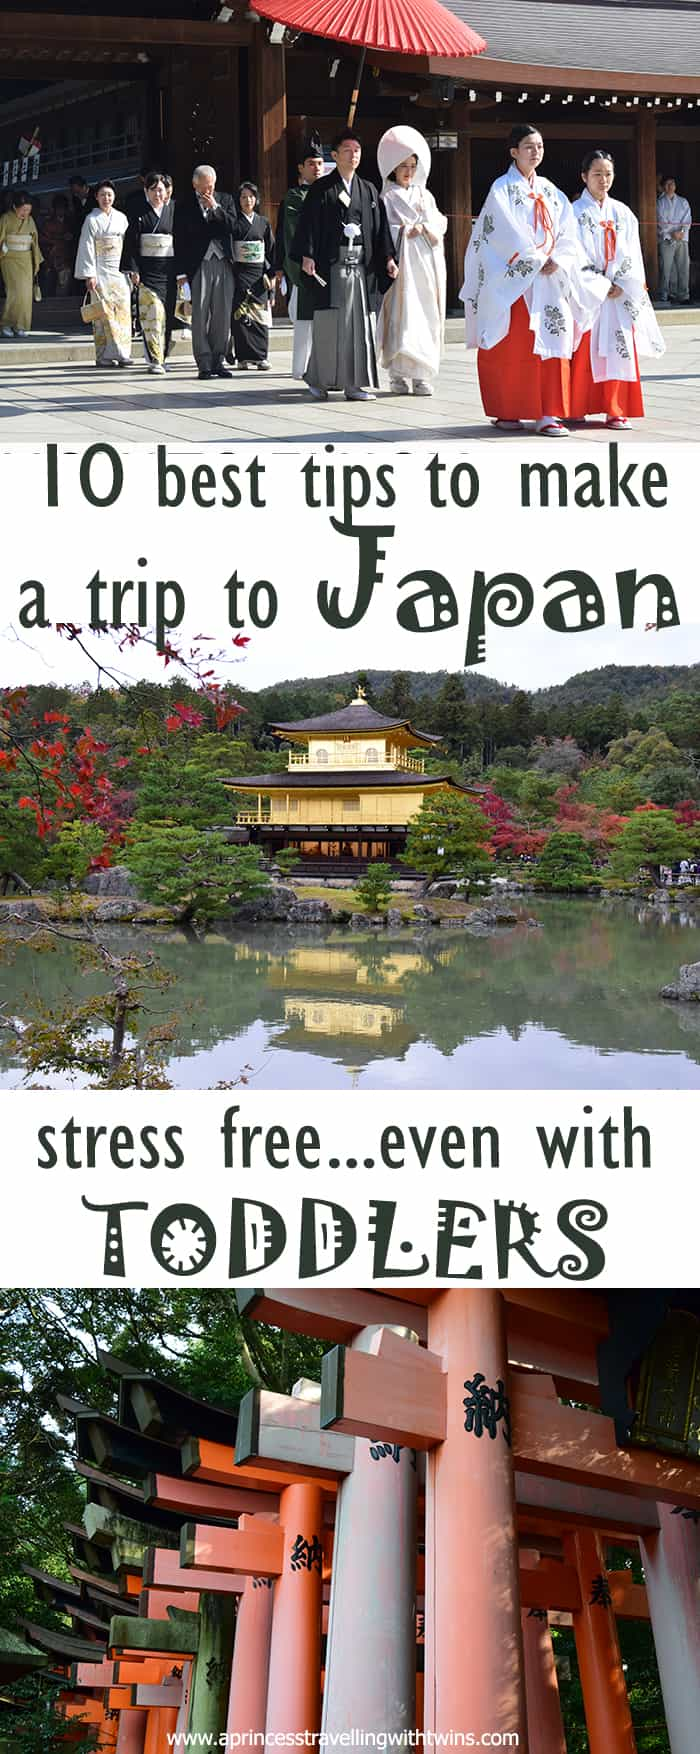 Japan is an enchanting country and here there are my personal best advice to make a succesfull and stress free trip even with smal toddlers